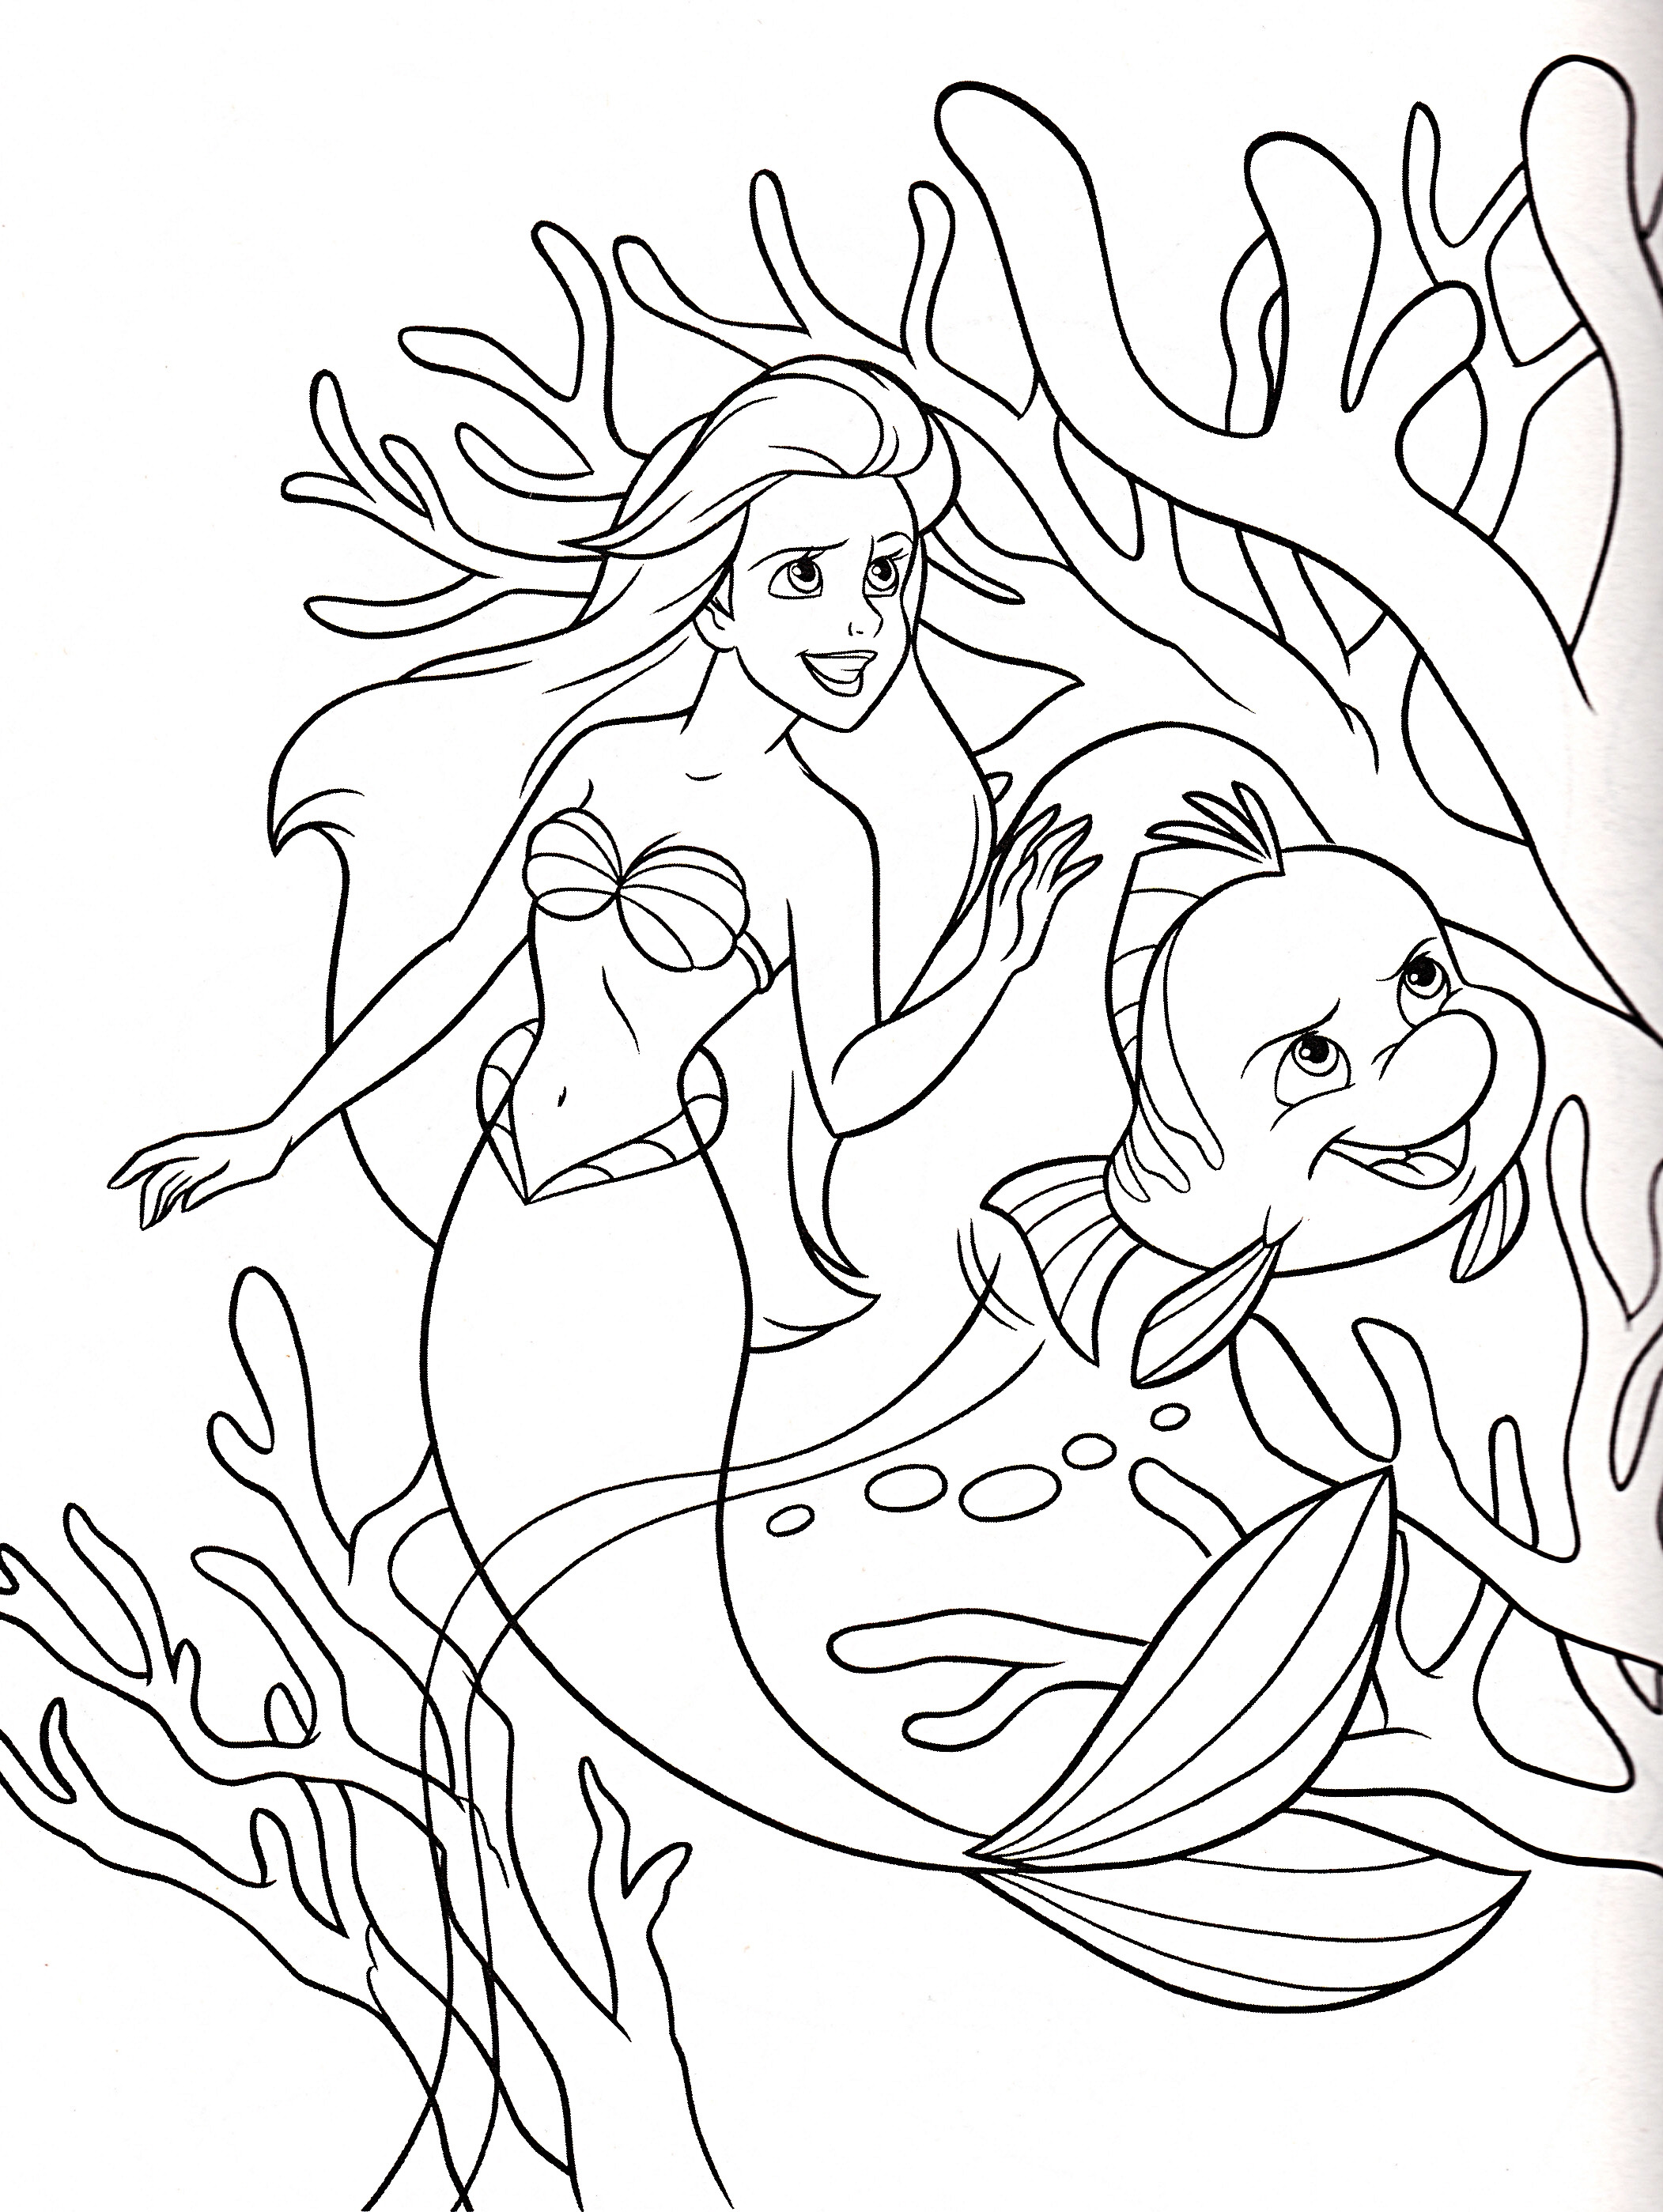 Online Coloring Sheets For Kids  Coloring Pages Disney Coloring For Kids line Coloring